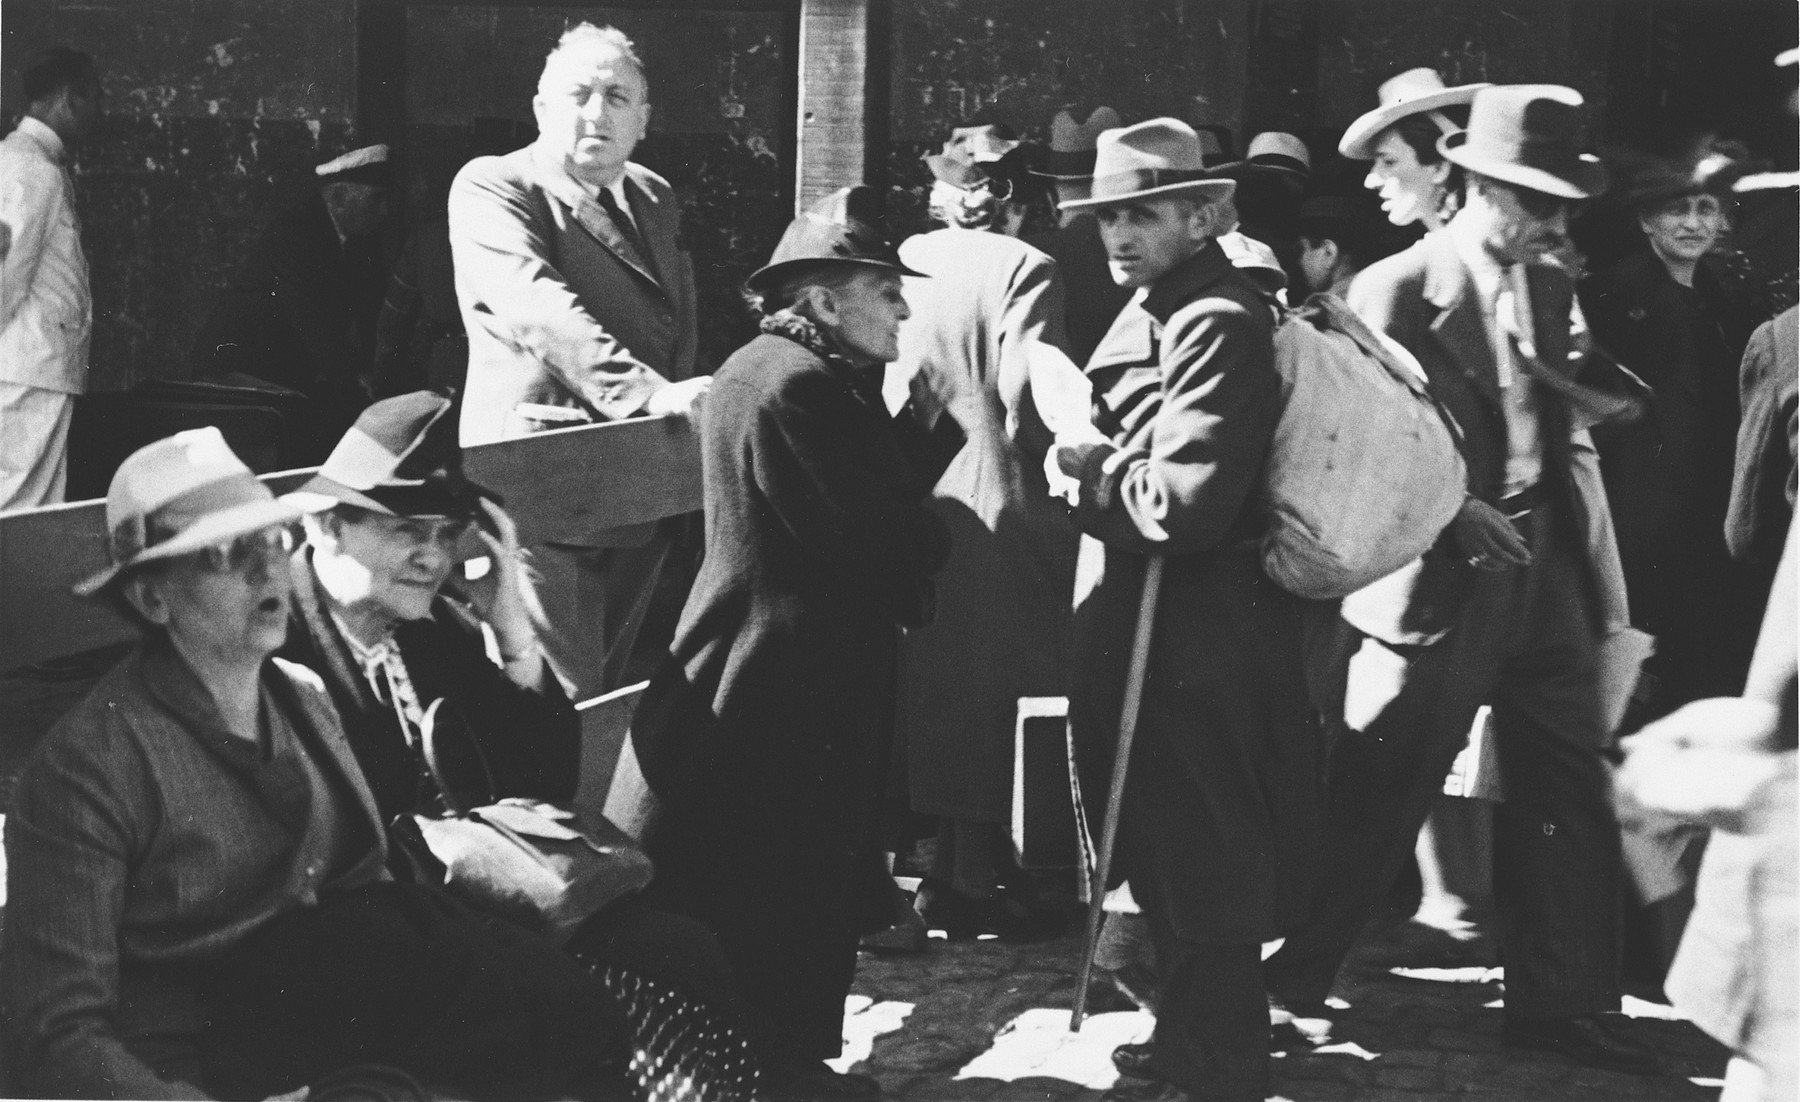 Albert Nussbaum, Director of Transmigration for the American Joint Distribution Committee, observes the scene at the port of Lisbon where Jewish refugees wait to board the SS Mouzinho.